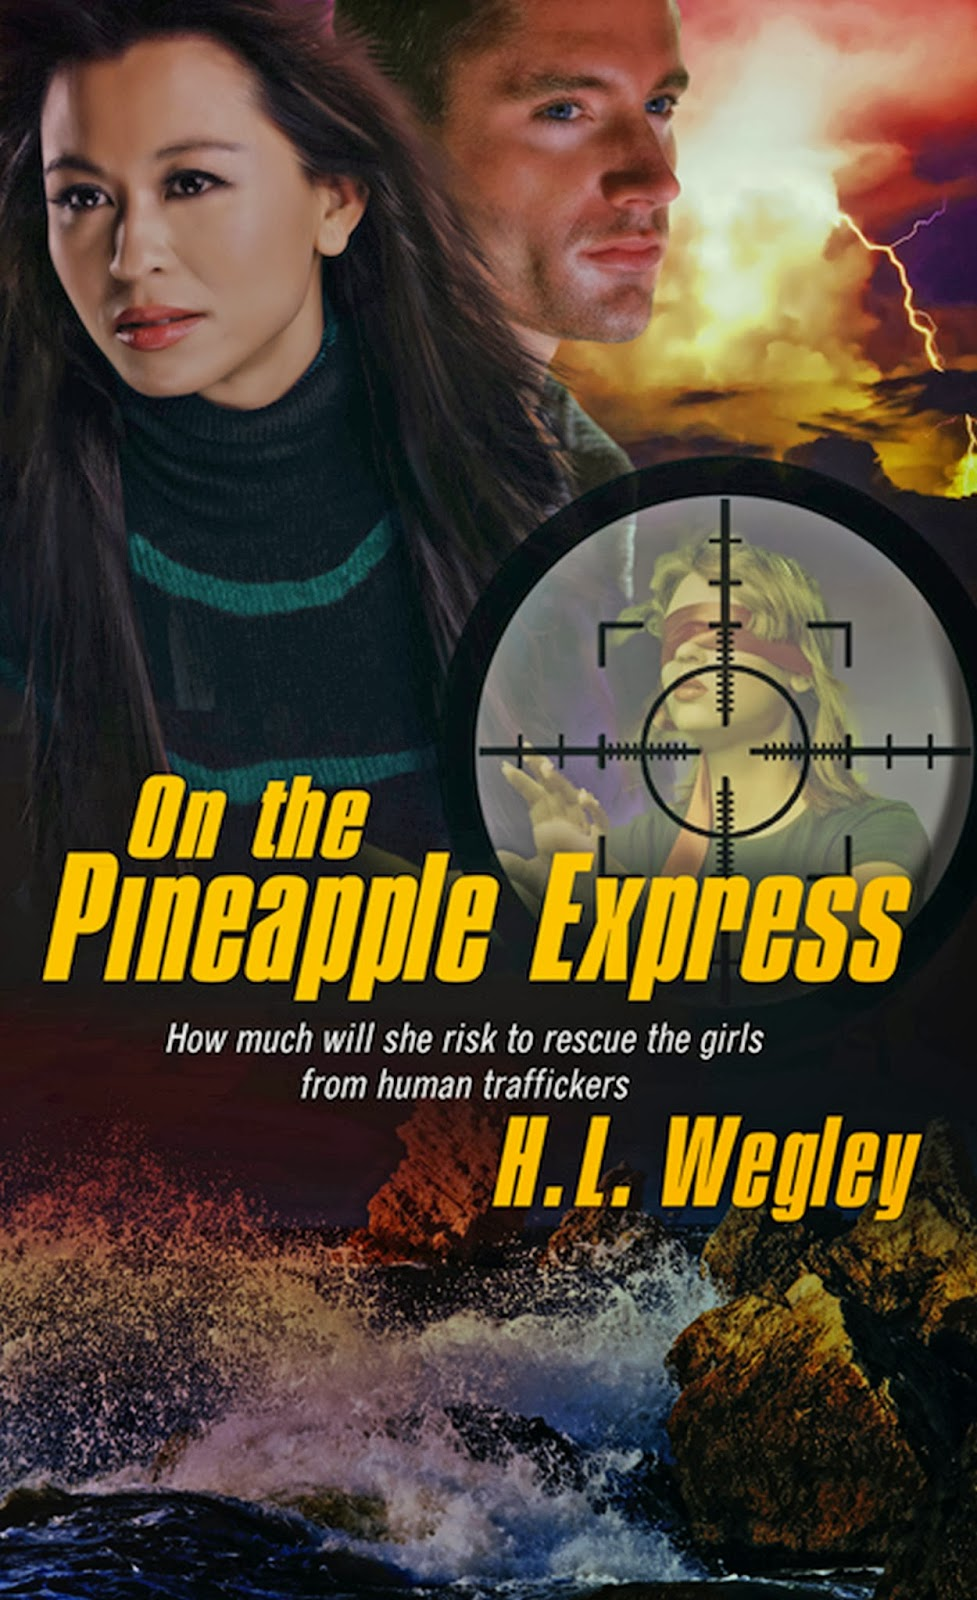 On the Pineapple Express. A man and woman are shown on the cover. Waves are crashing on rocks at the bottom of the cover.